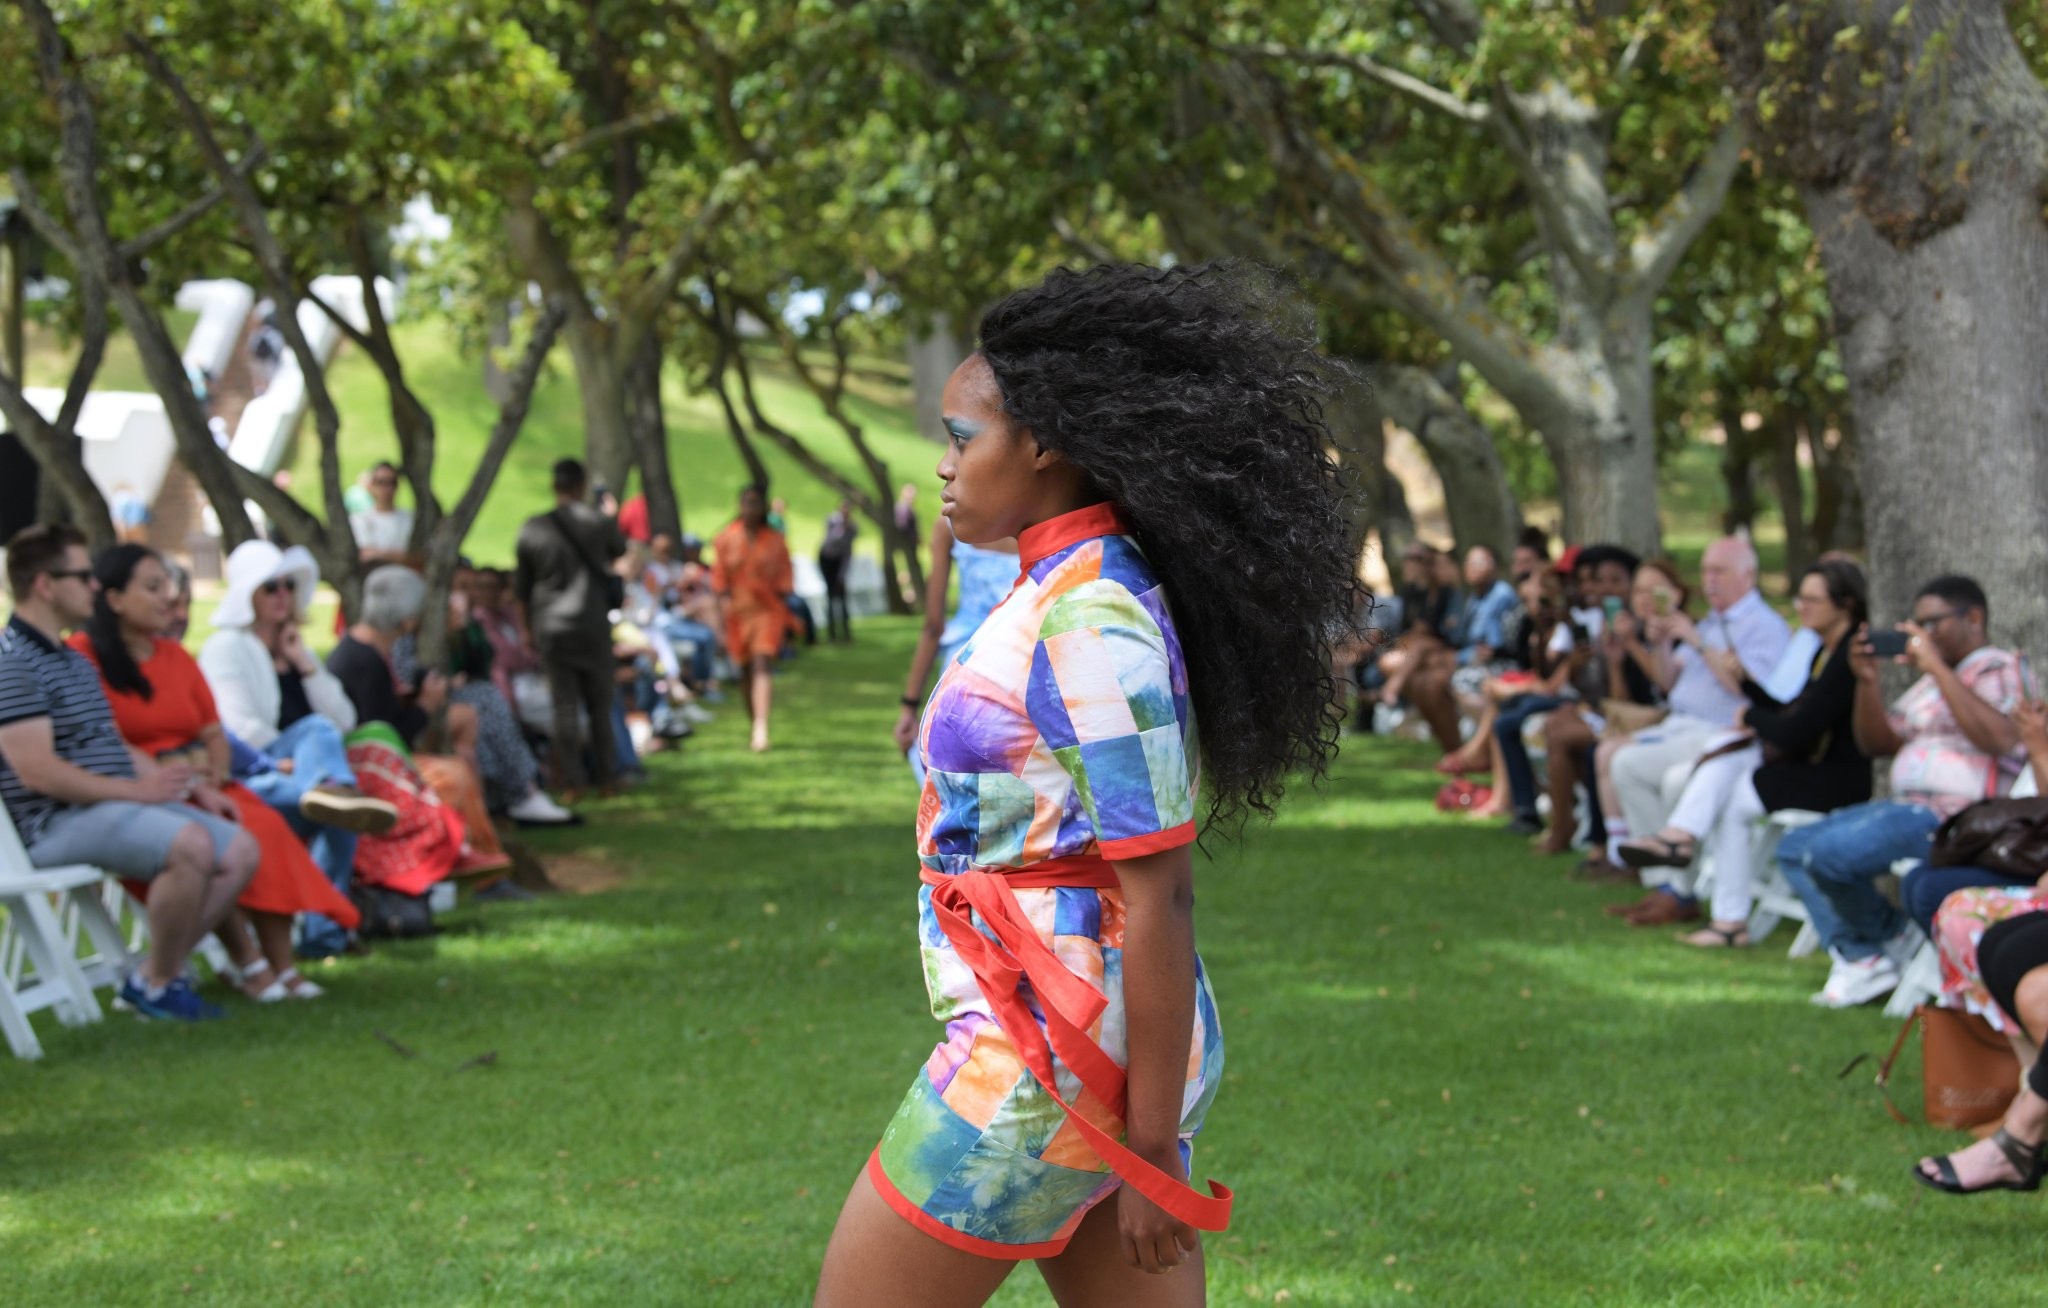 City Of Cape Town On Twitter The City Partnered With The Cape Town College Of Fashion Design To Host The Emerging Artists Fashion Showcase That Took Place At Groot Constantia Yesterday Emergingartistsprogramme